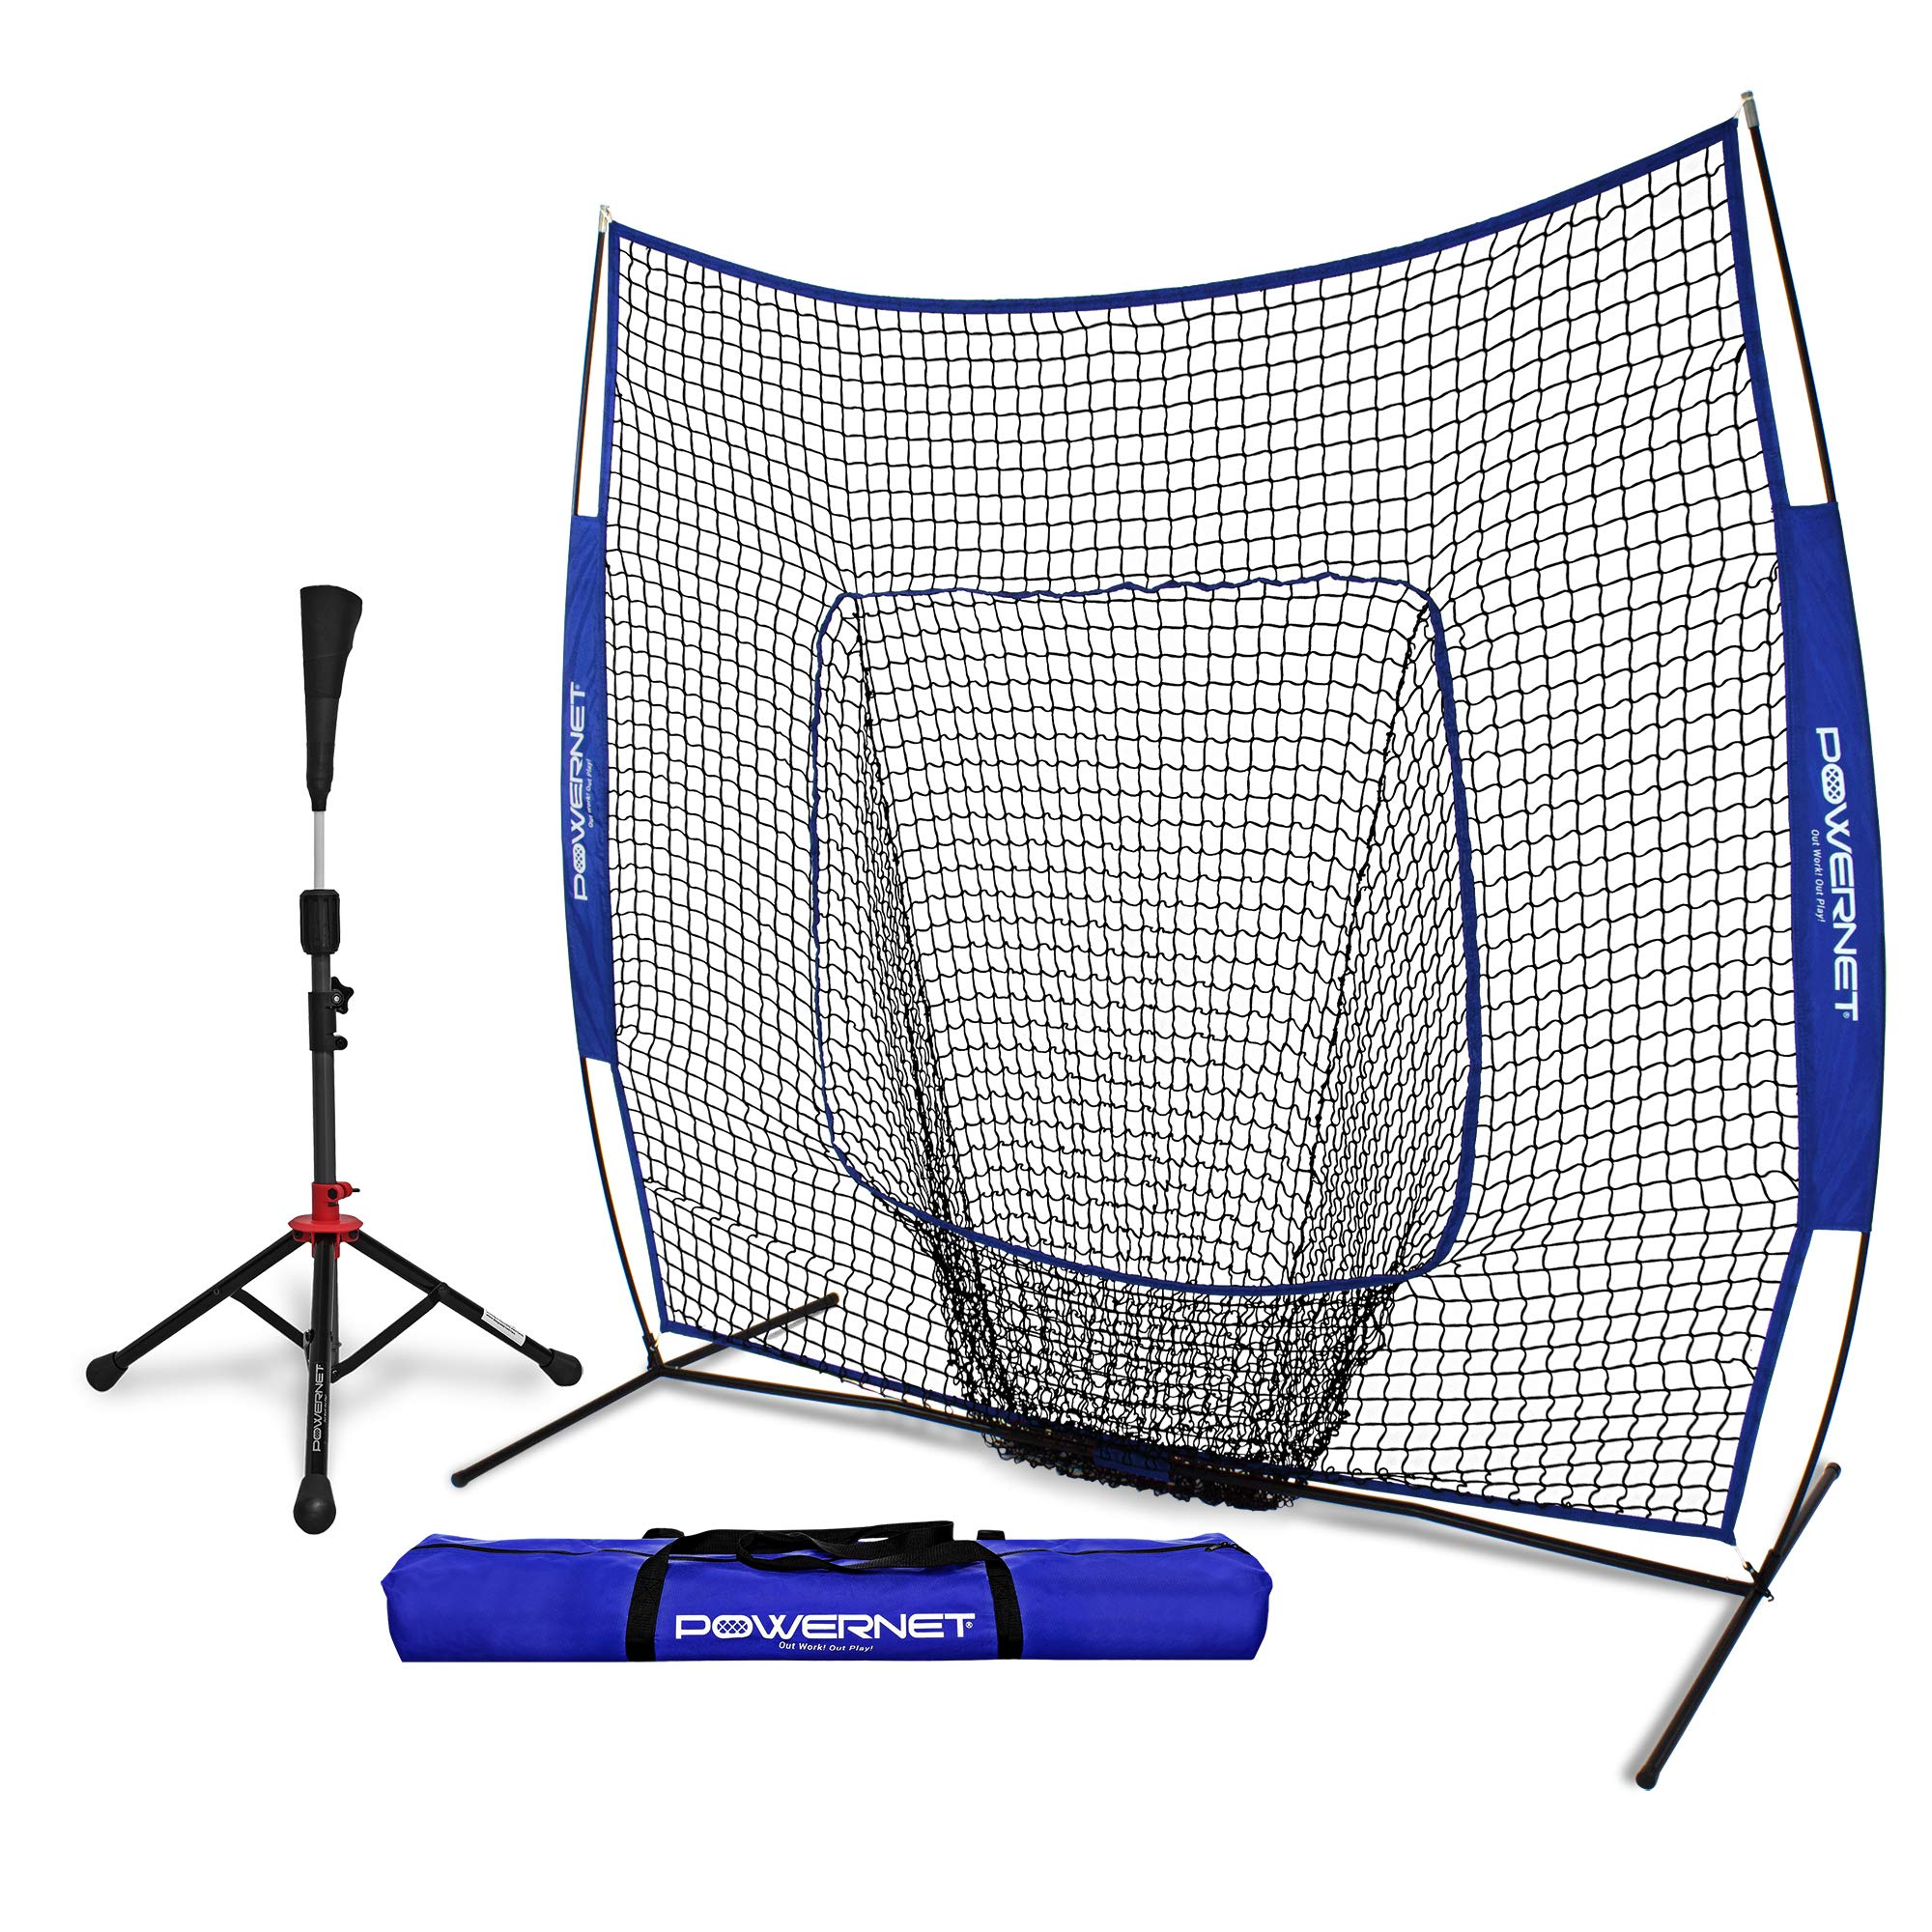 PowerNet Baseball Softball Practice Net 7x7 with Deluxe Tee (Royal Blue) | Practice Hitting, Pitching, Batting, Fielding | Portable, Backstop, Training Aid,Bow Frame | Training Equipment Bundle by PowerNet